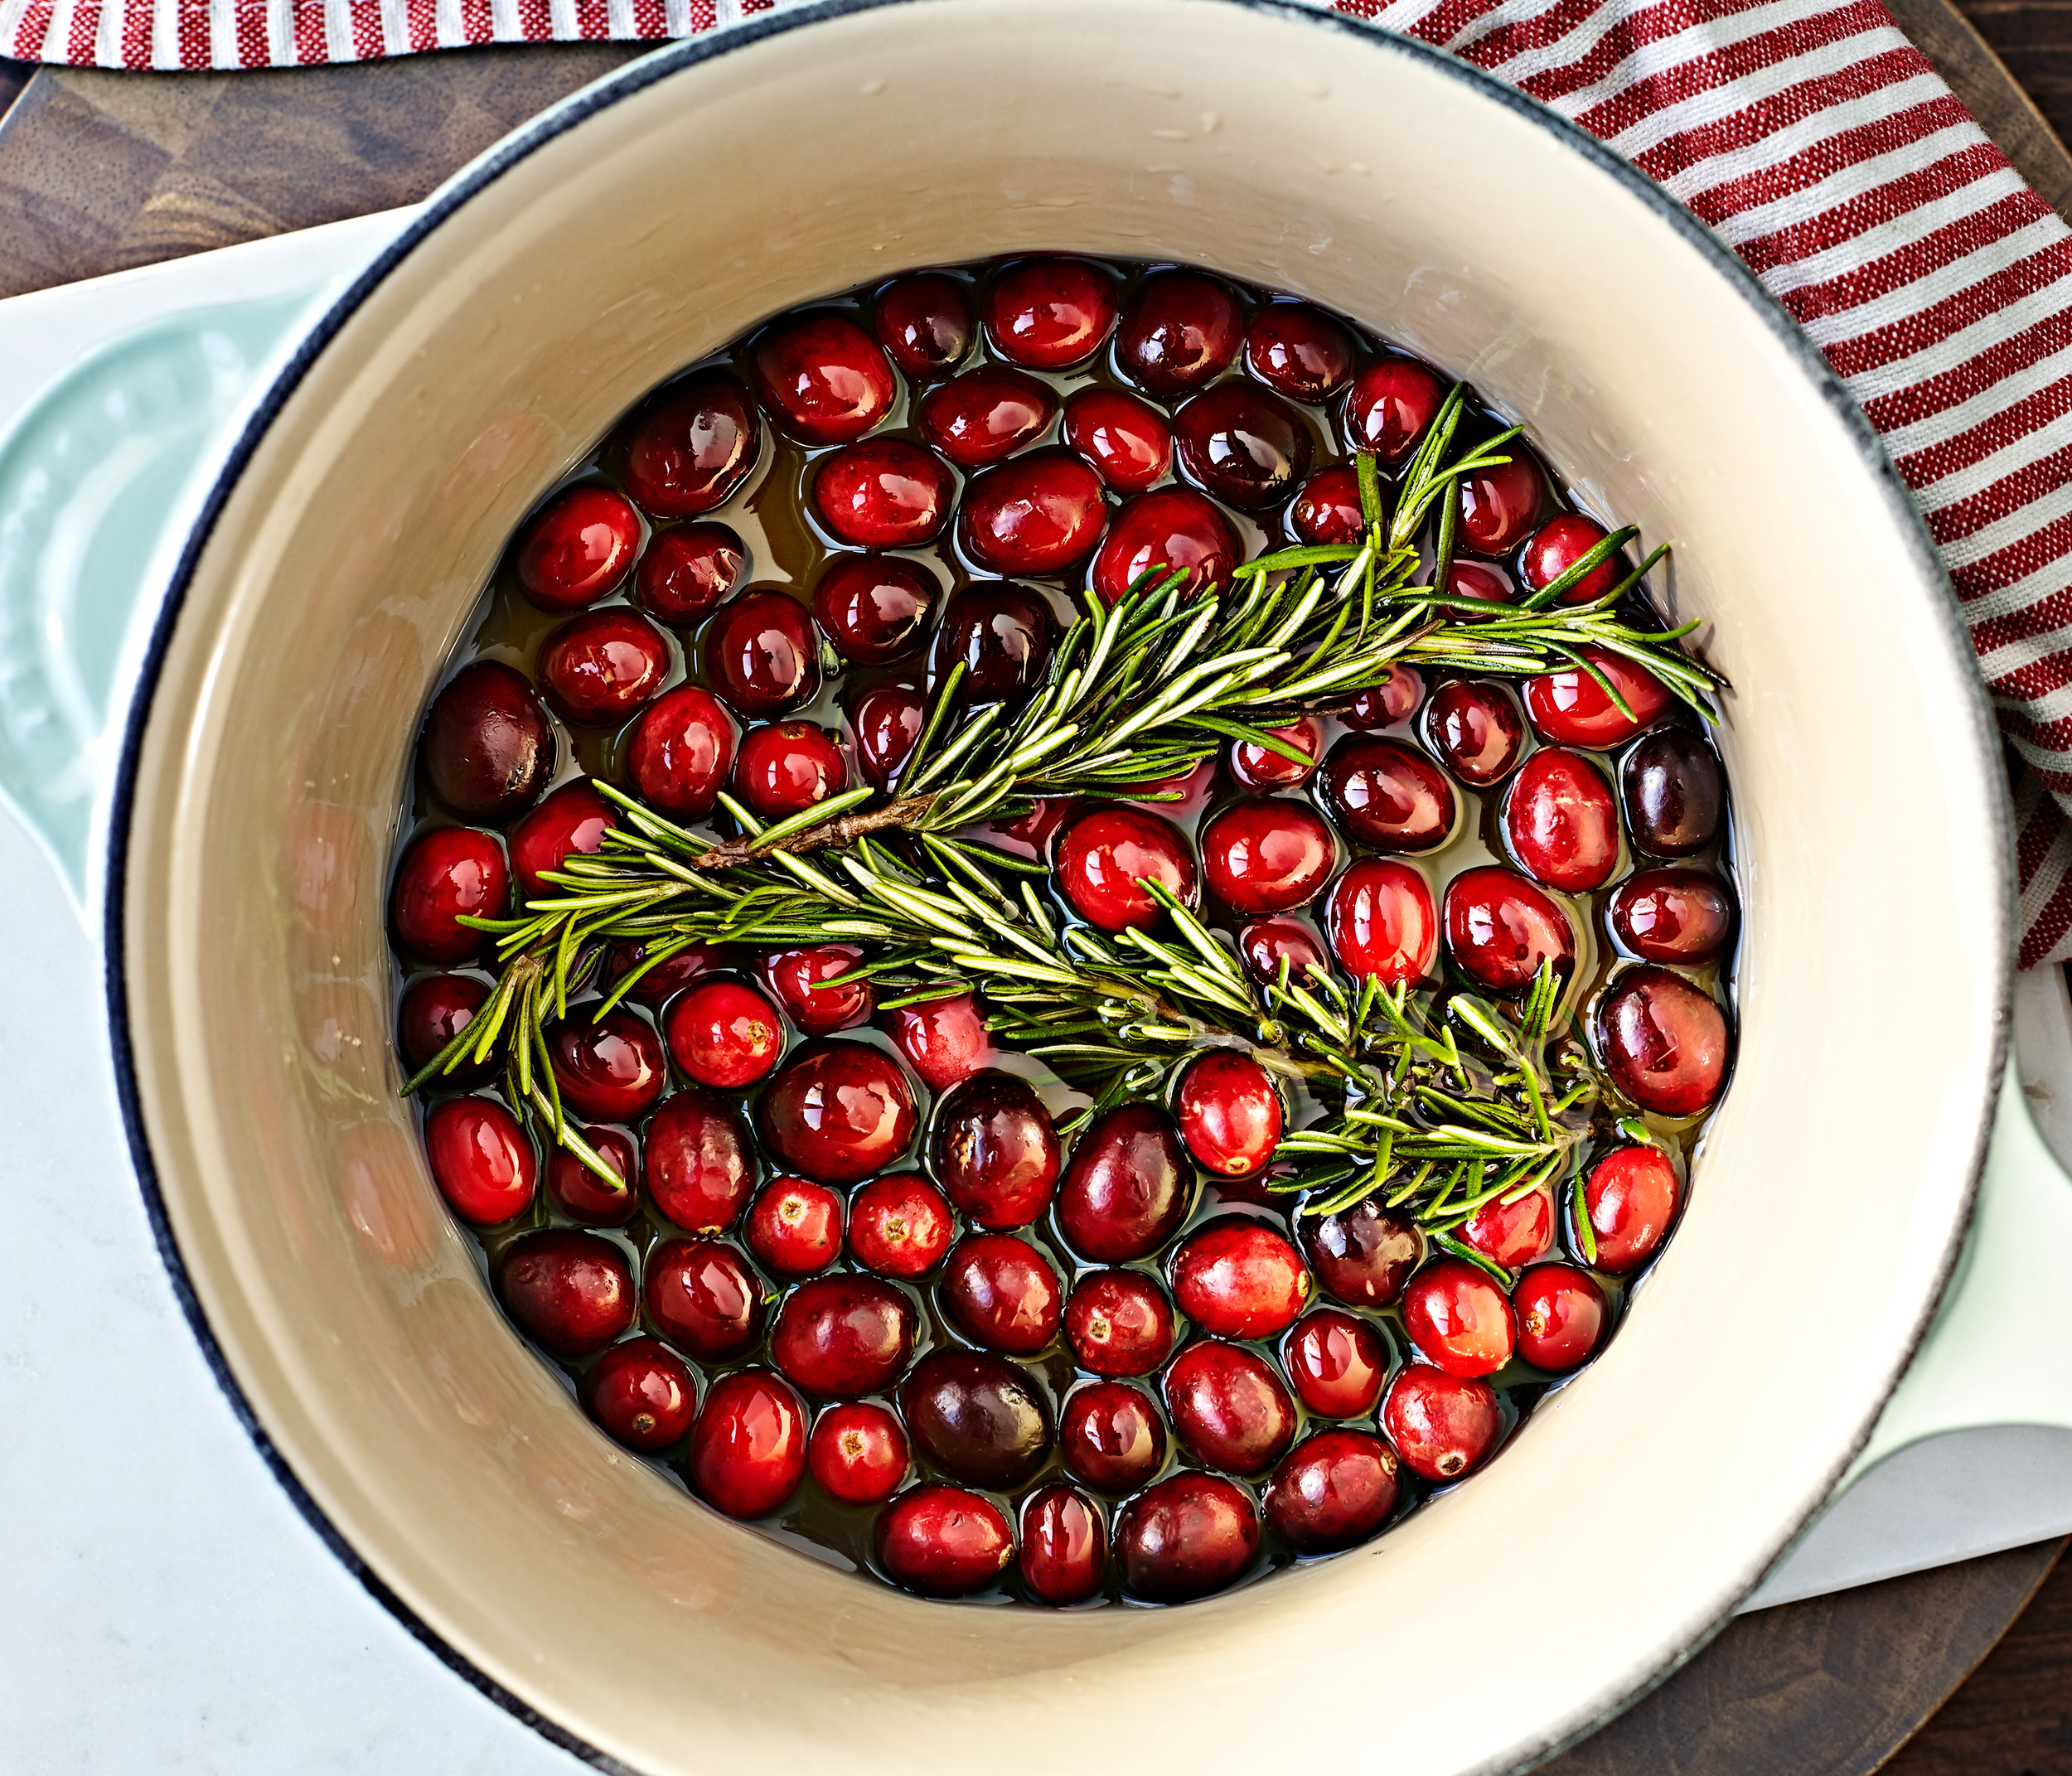 Fresh cranberries steeping in simple syrup with rosemary sprig